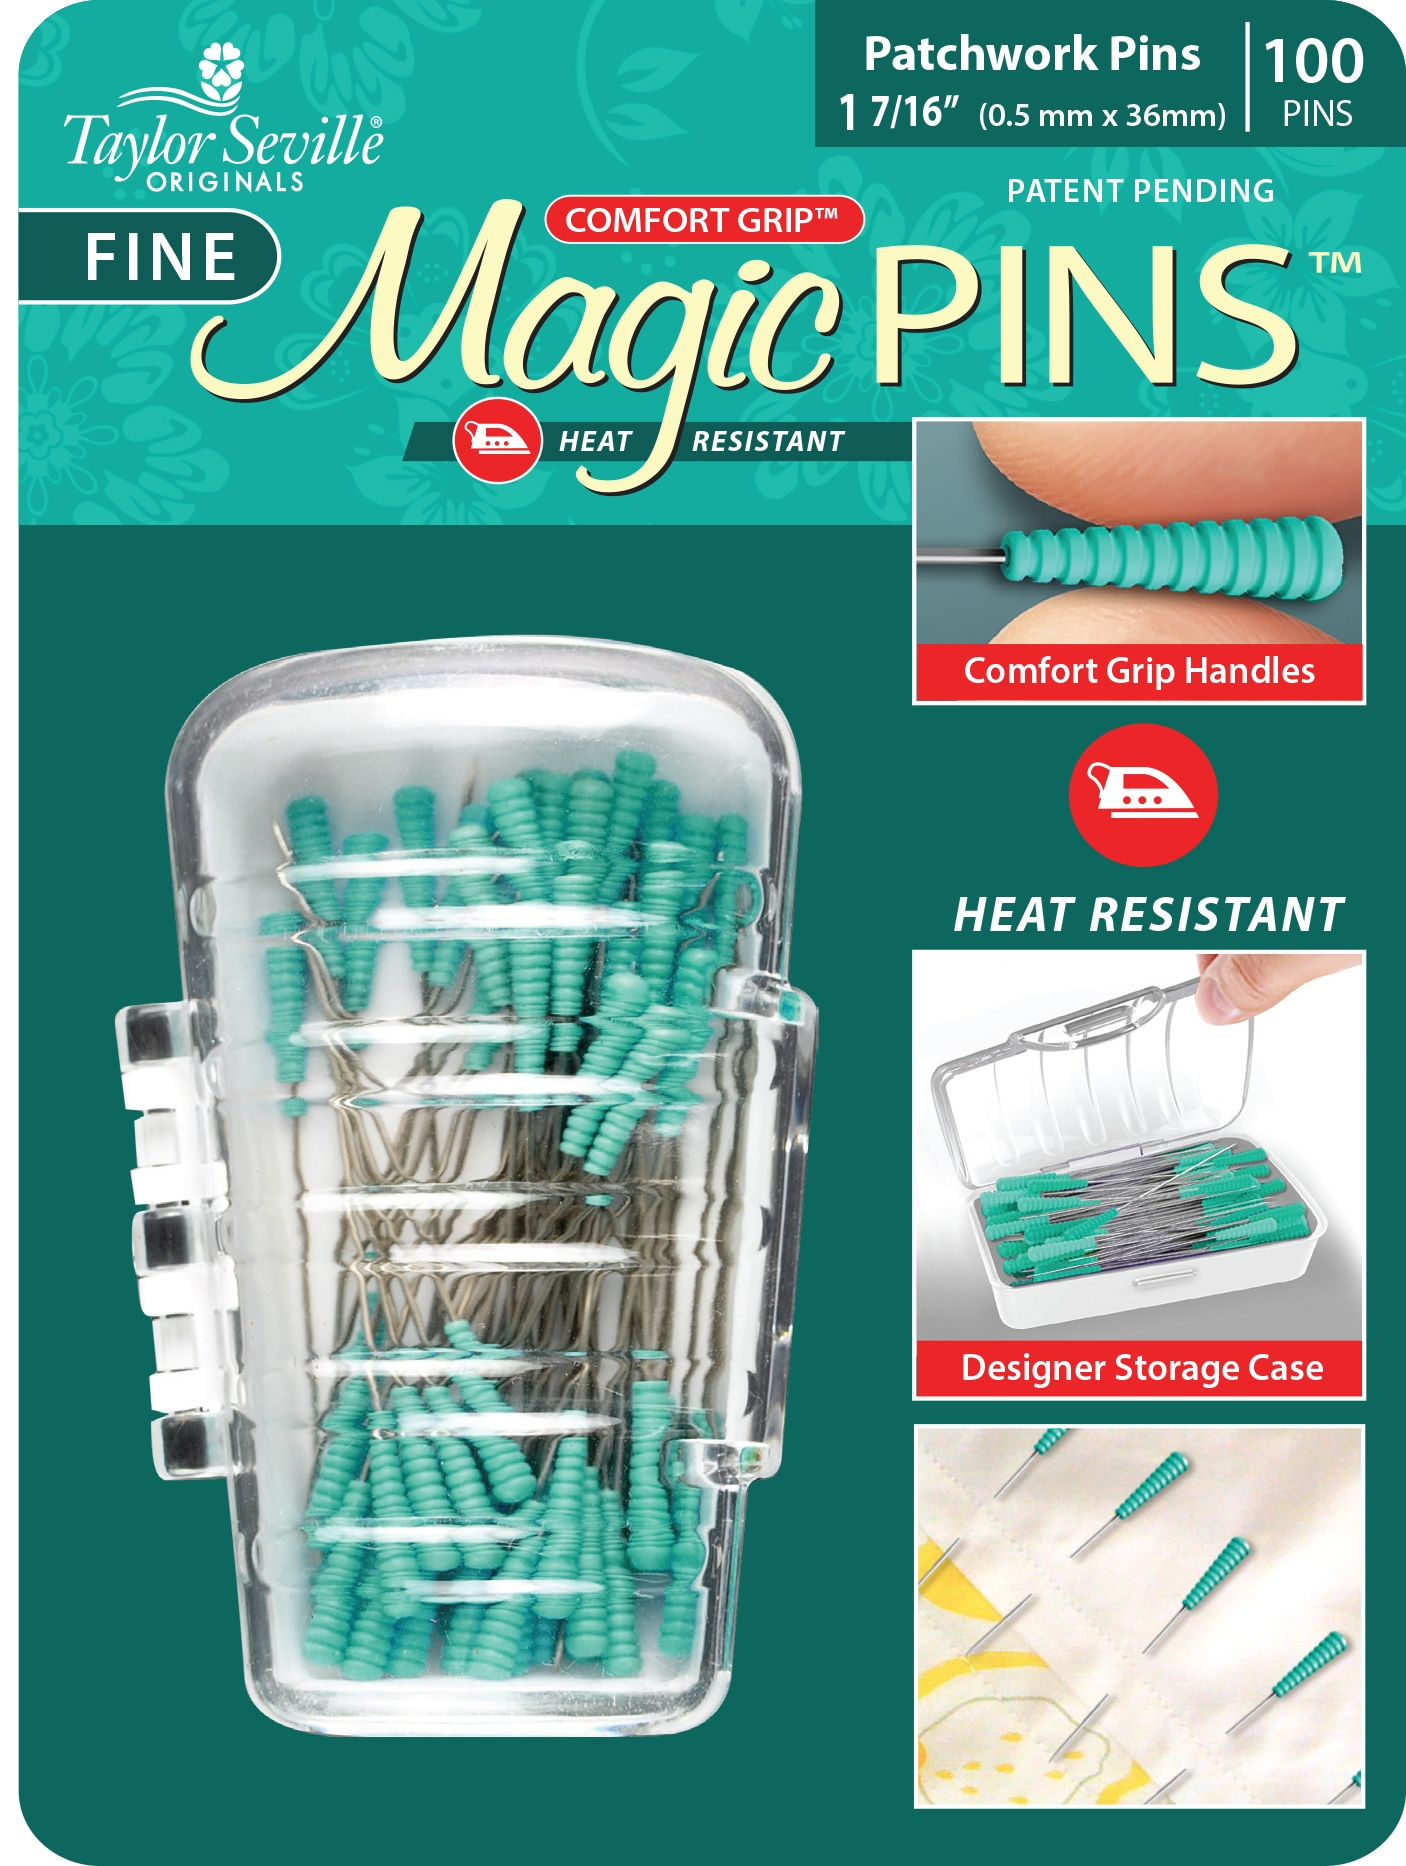 Fine Magic Pins Patchwork - 100 Pins